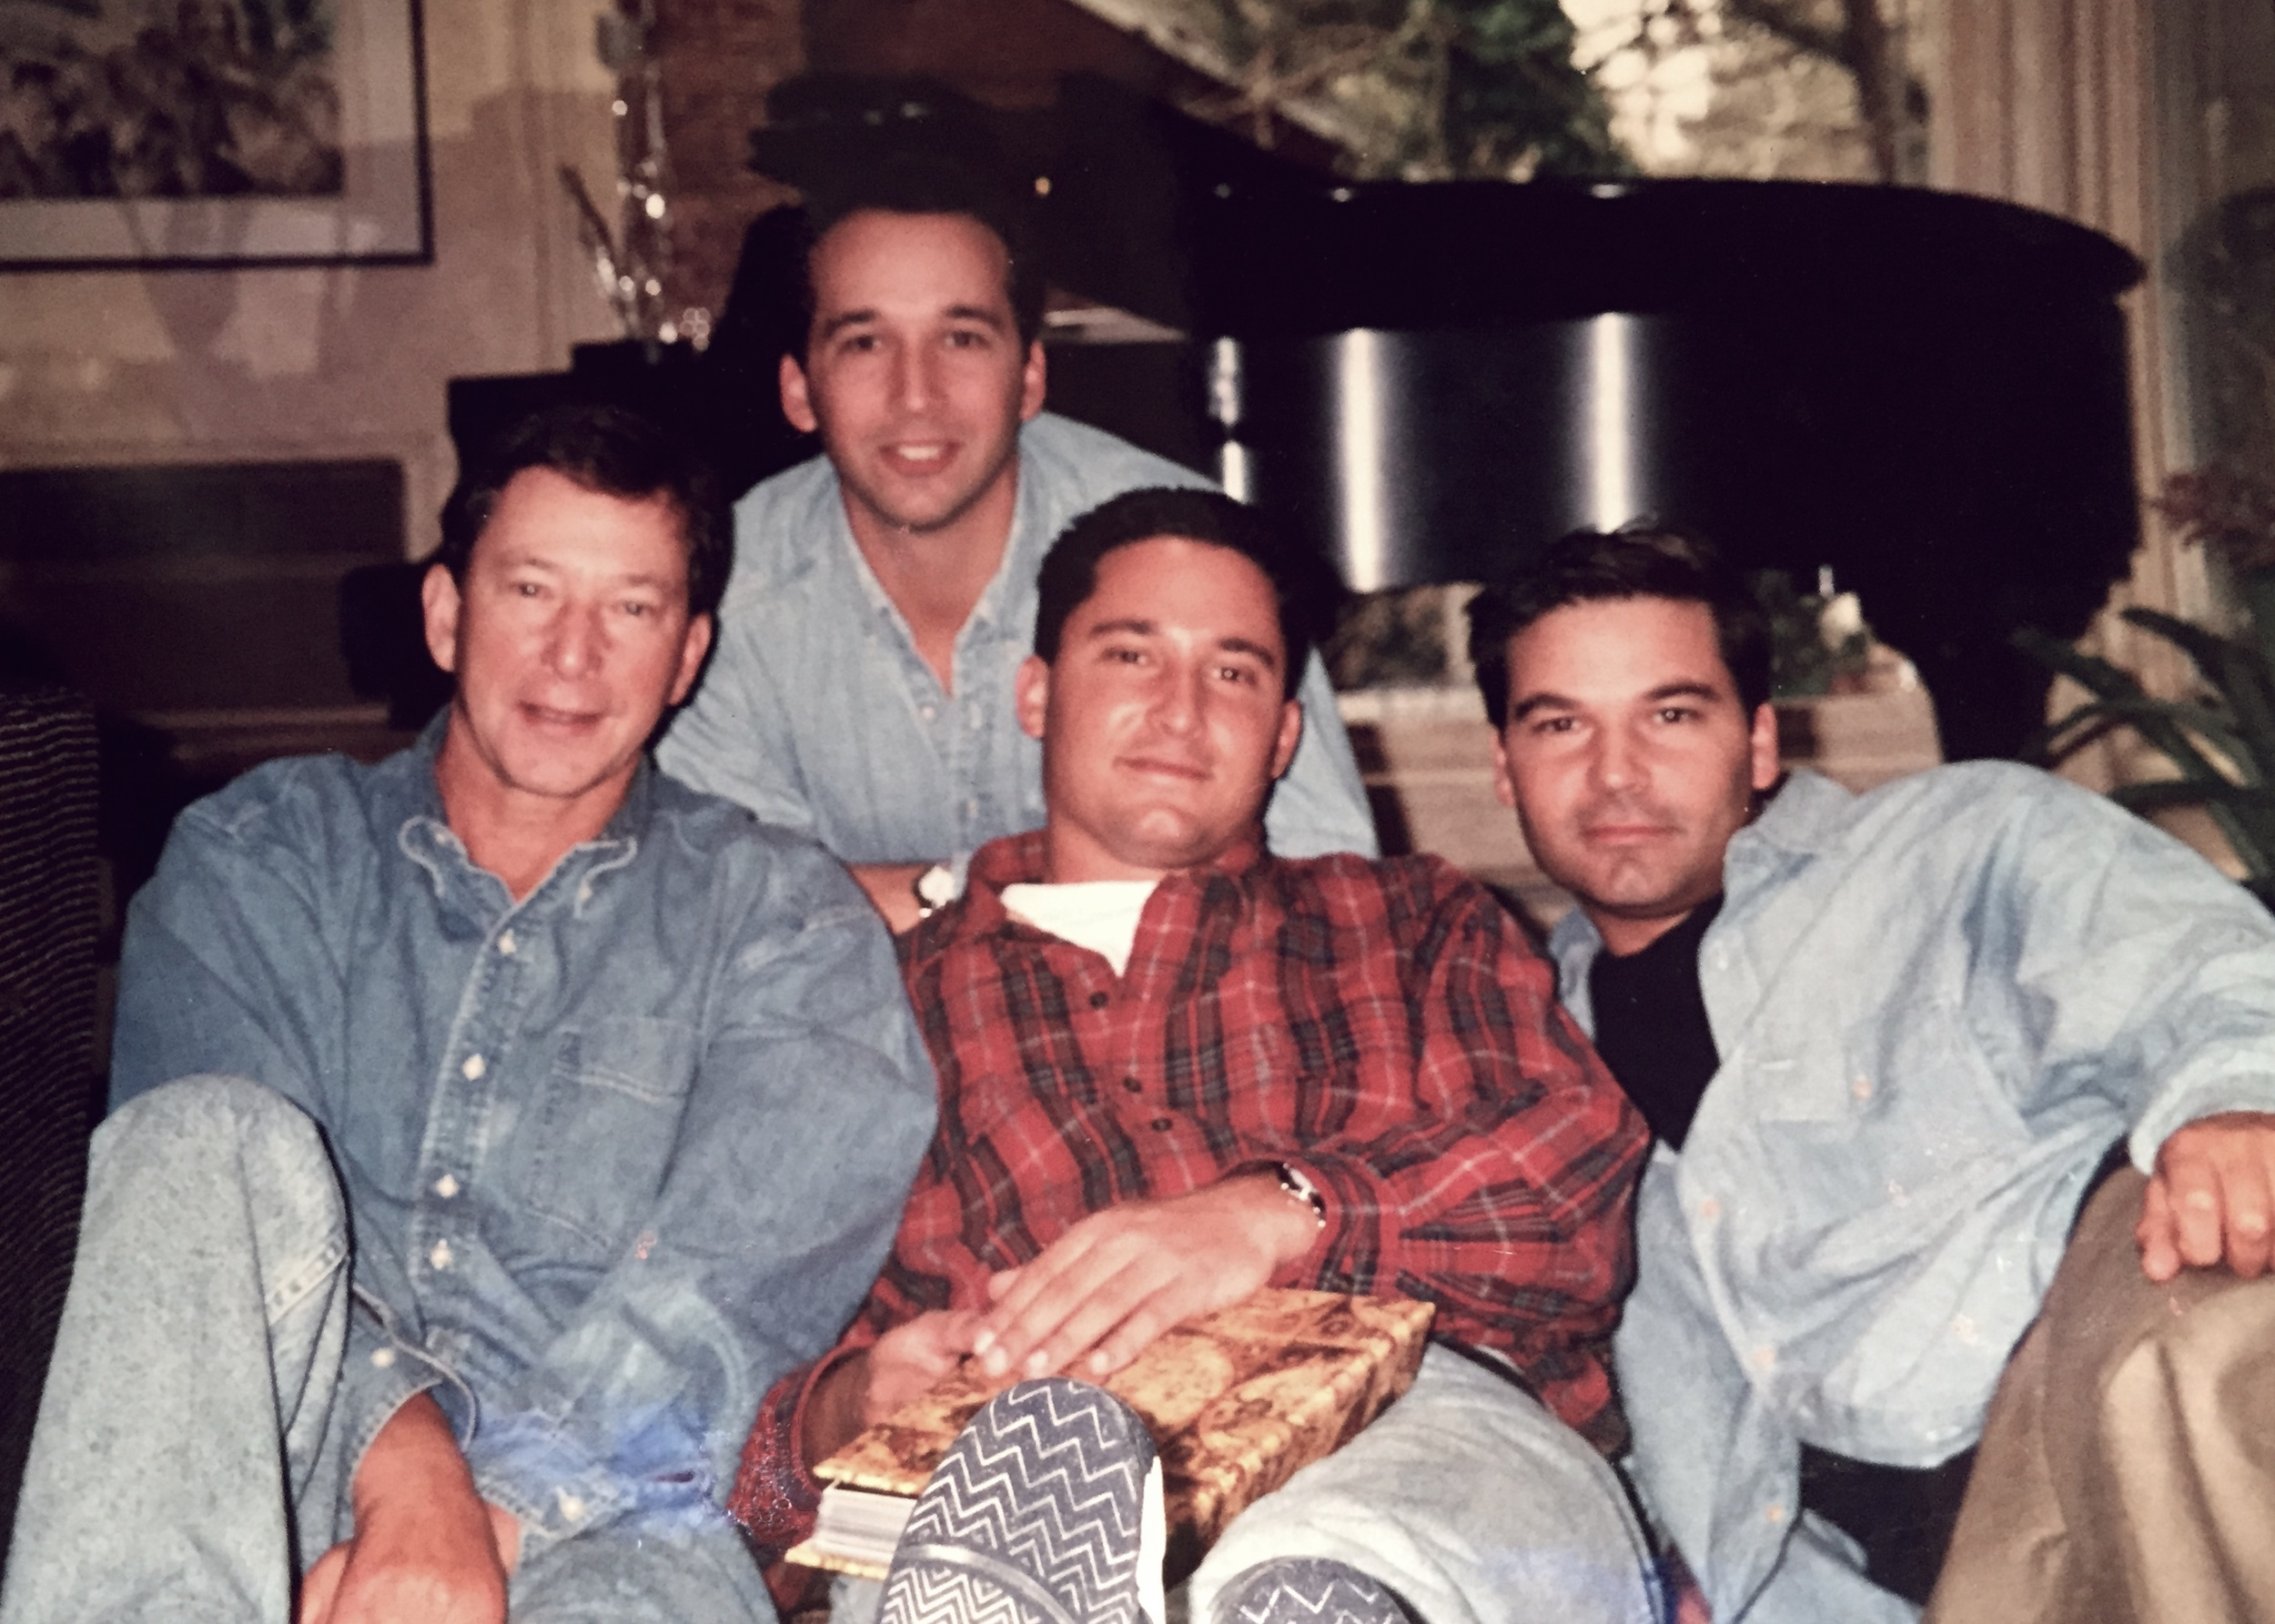 Favorite Photo: Jerry & Our 3 Sons